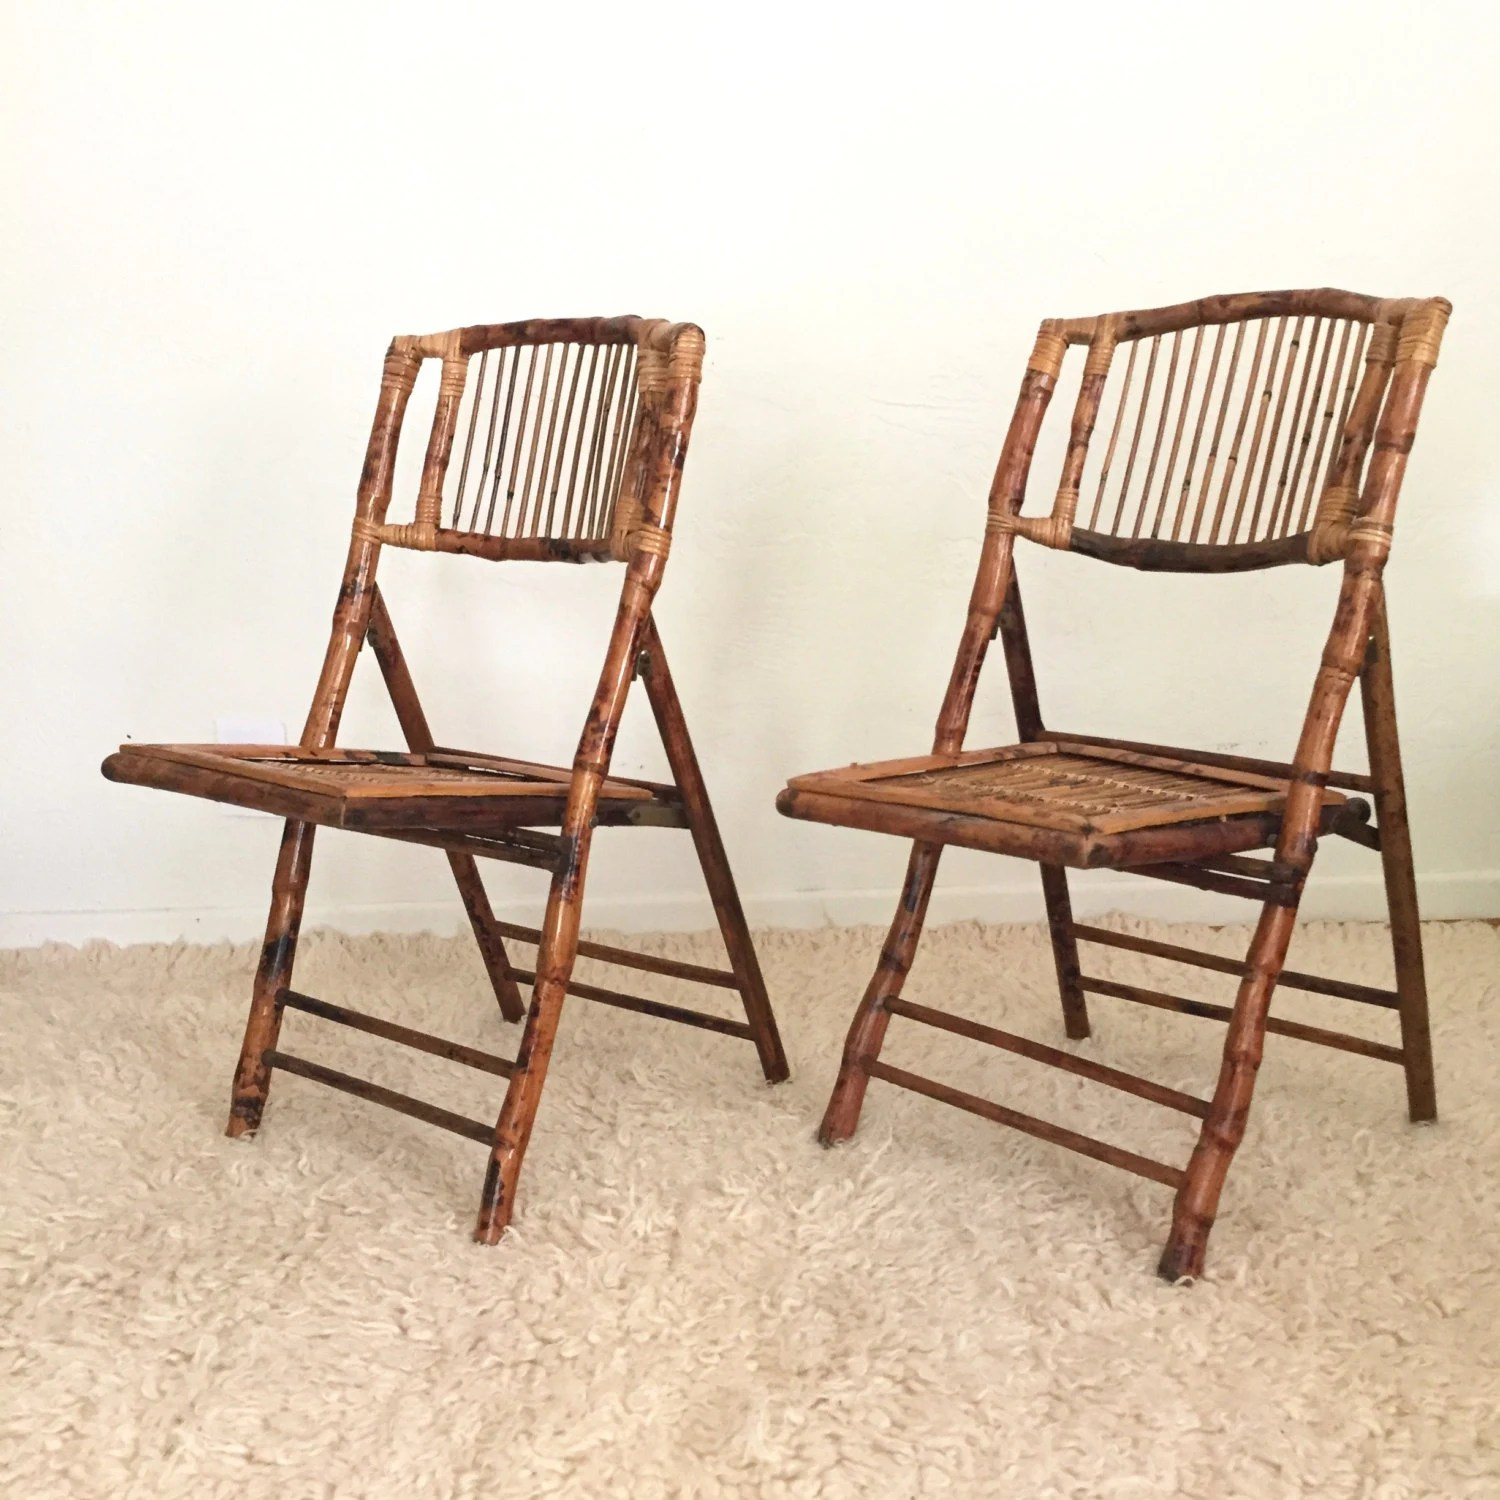 folding japanese chair accent modern bamboo rattan chairs set of 2 rustic boho